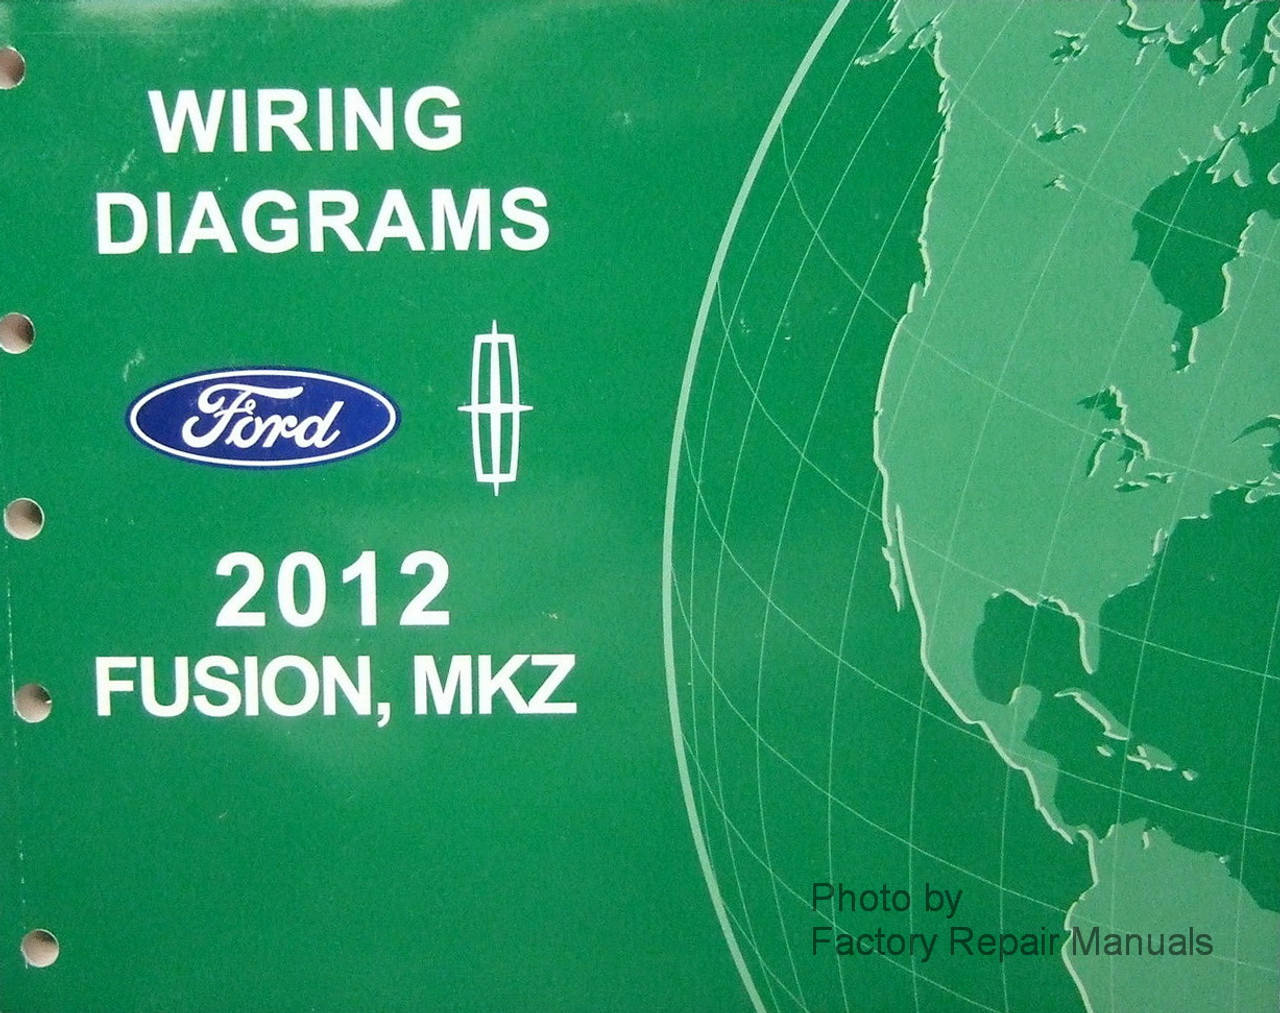 2012 Ford Fusion And Lincoln Mkz Electrical Wiring Diagrams Manual Gas Models